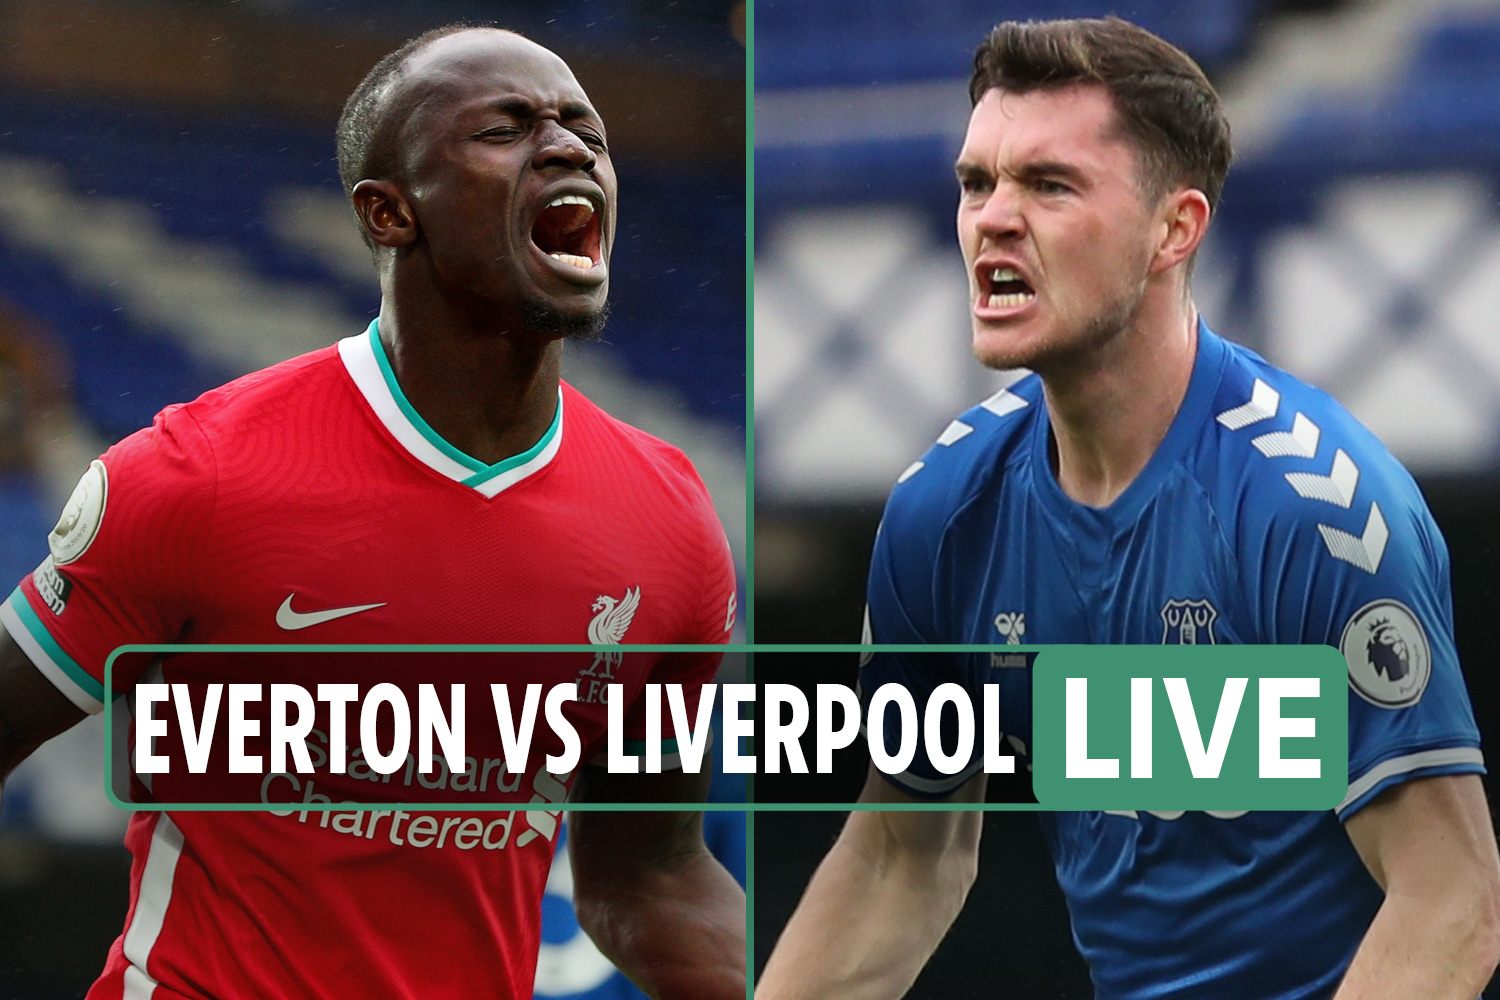 Everton vs Liverpool LIVE: Stream FREE, TV channel, score as Keane heads in equaliser at Goodison thriller